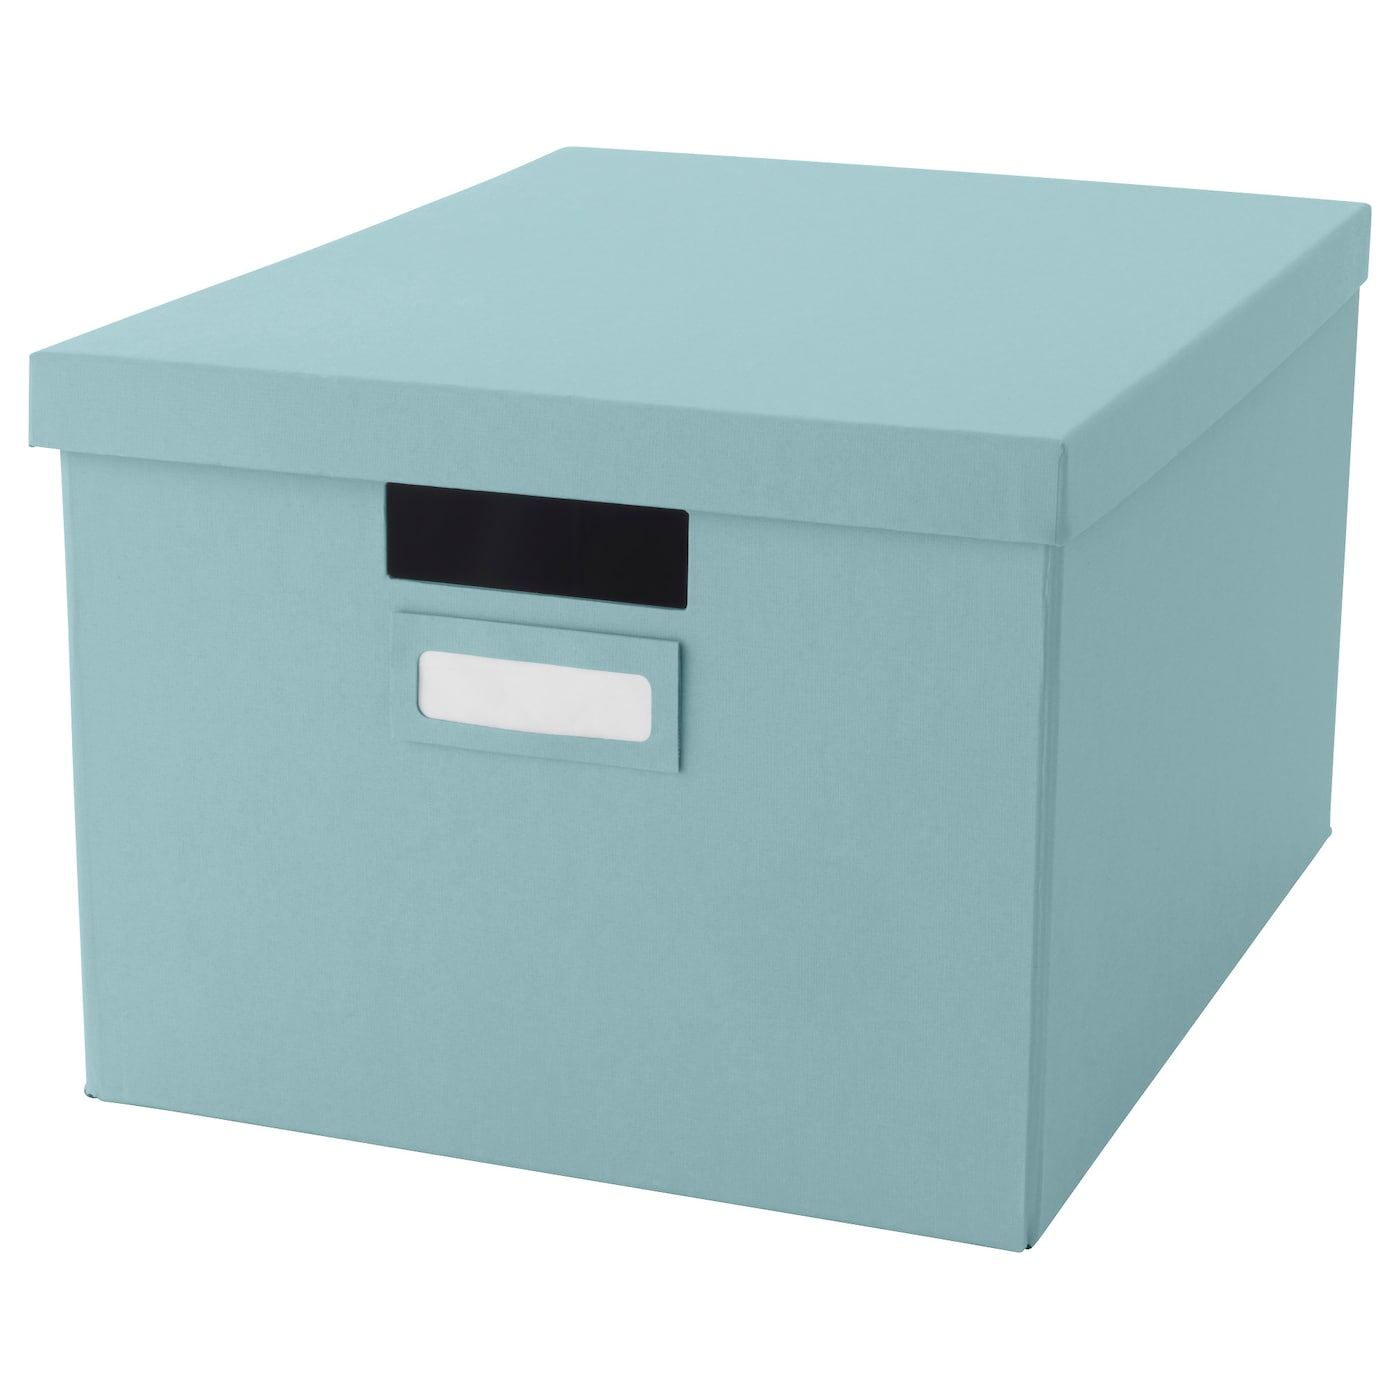 tjena box with lid light blue 27x35x20 cm ikea. Black Bedroom Furniture Sets. Home Design Ideas